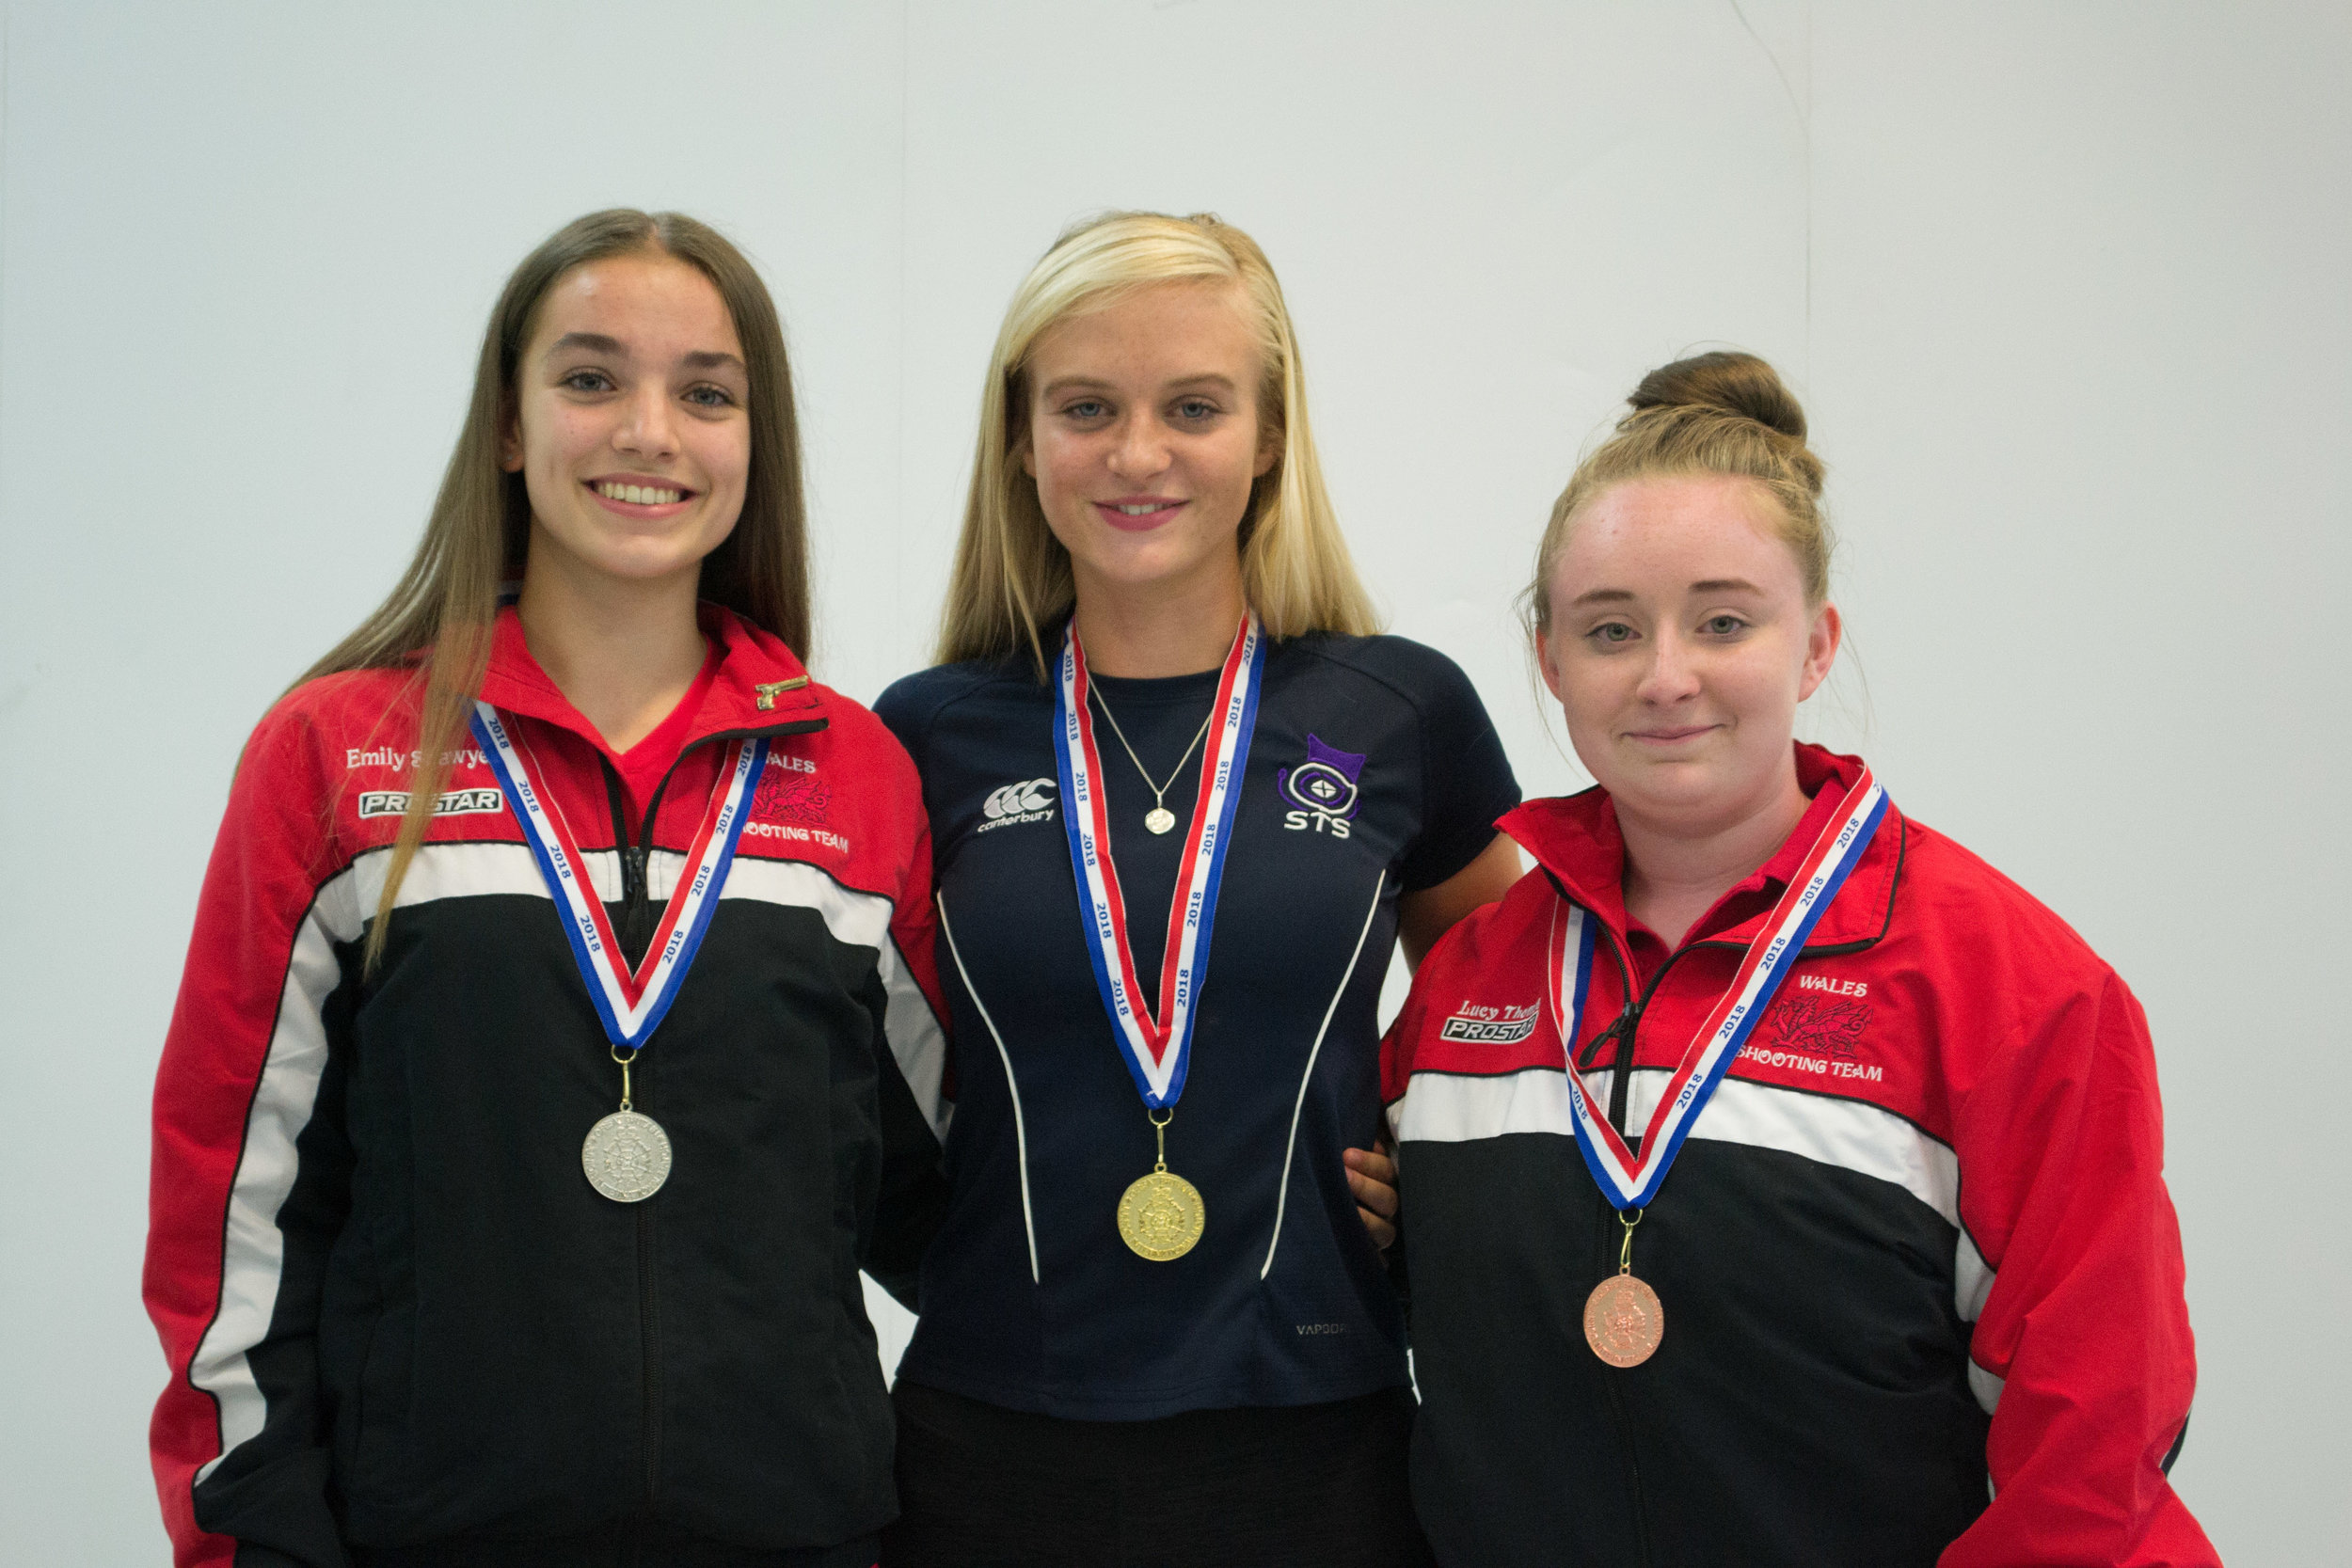 Katie, flanked by Welsh shooters, won Gold with a score of 555